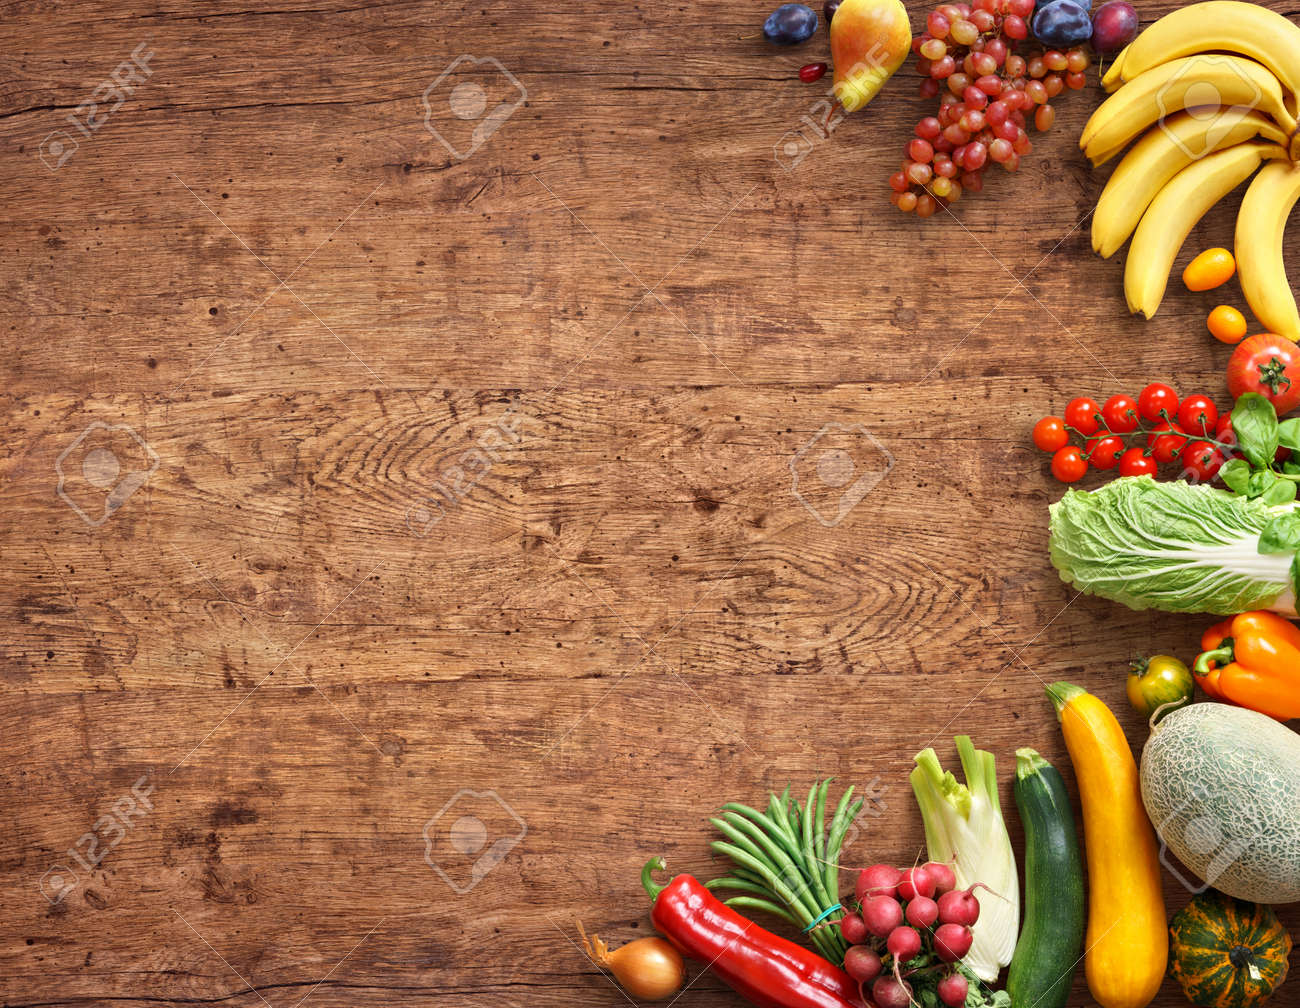 Healthy Food Background Studio Photography Of Different Fruits Stock Photo Picture And Royalty Free Image Image 54088665